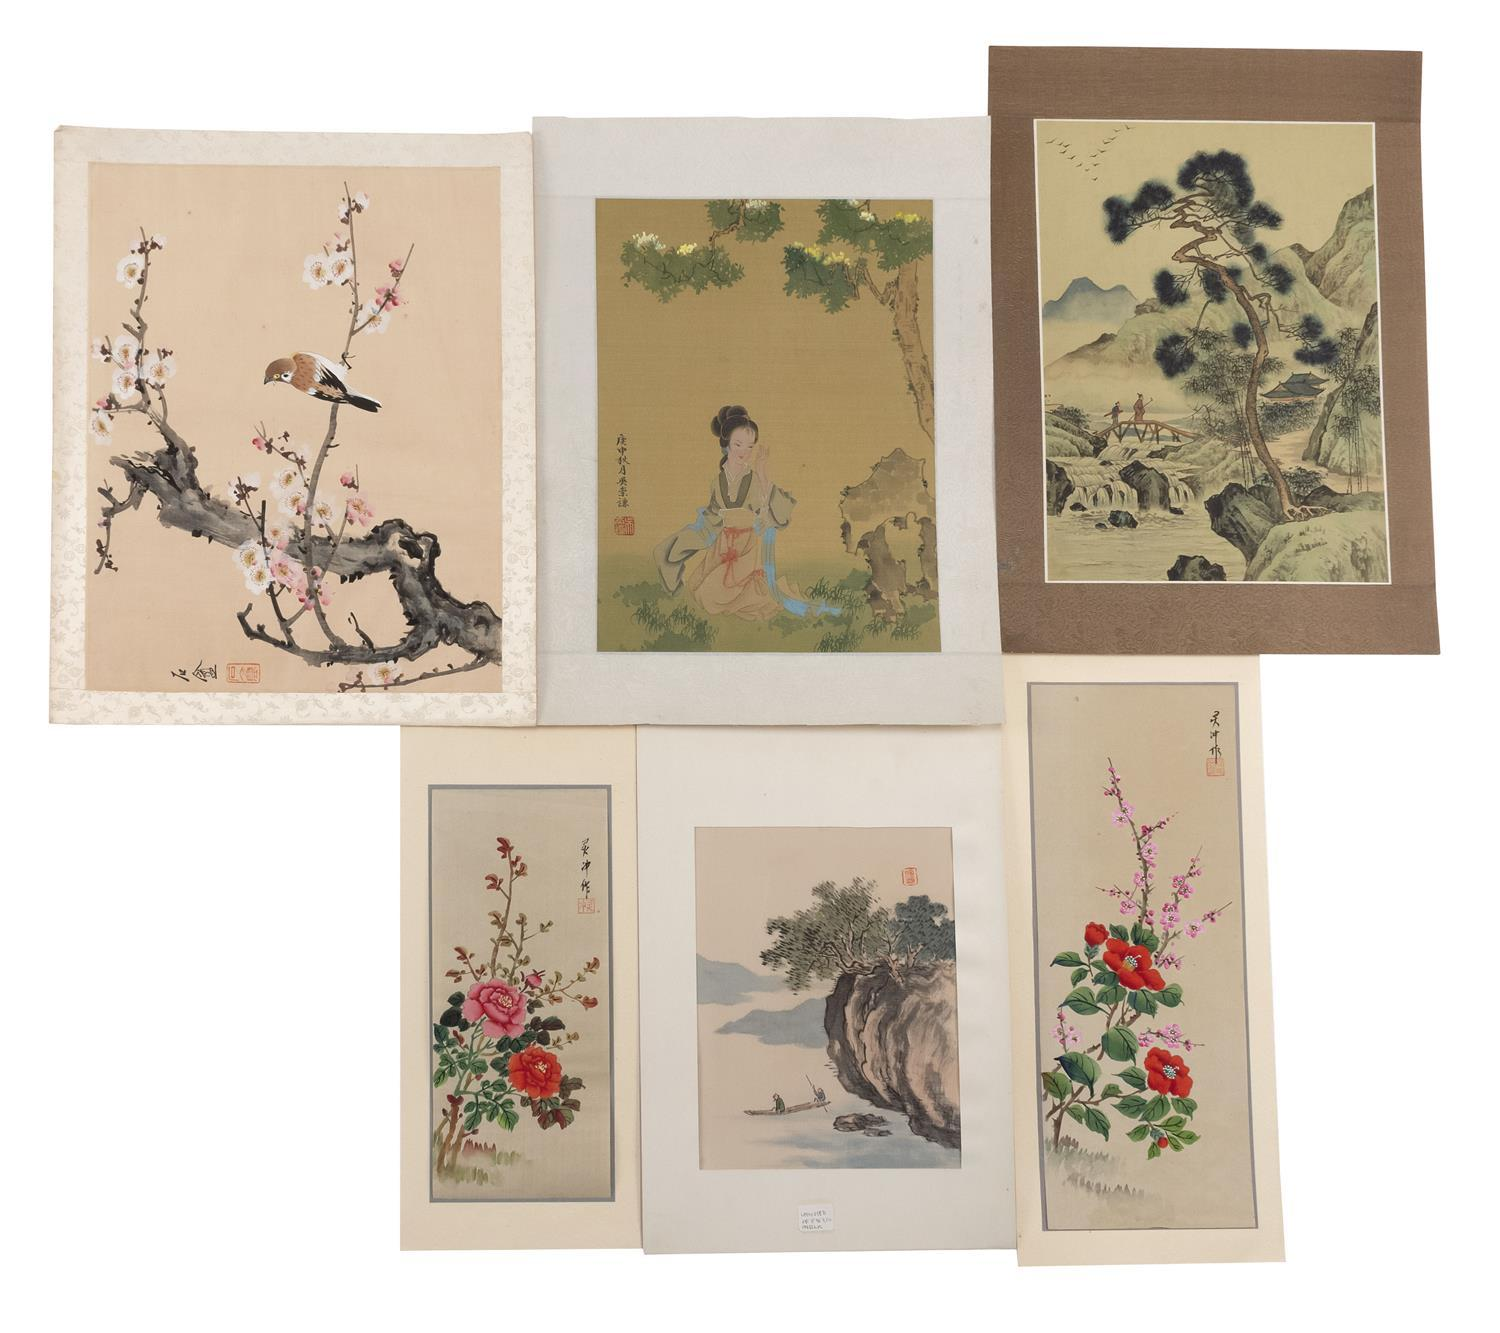 SIX ASIAN PAINTINGS 1) Two boatmen. 2-3) Two works depicting roses. 4) Two figures crossing a bridge. 5) Birds and prunus. 6) A woma...